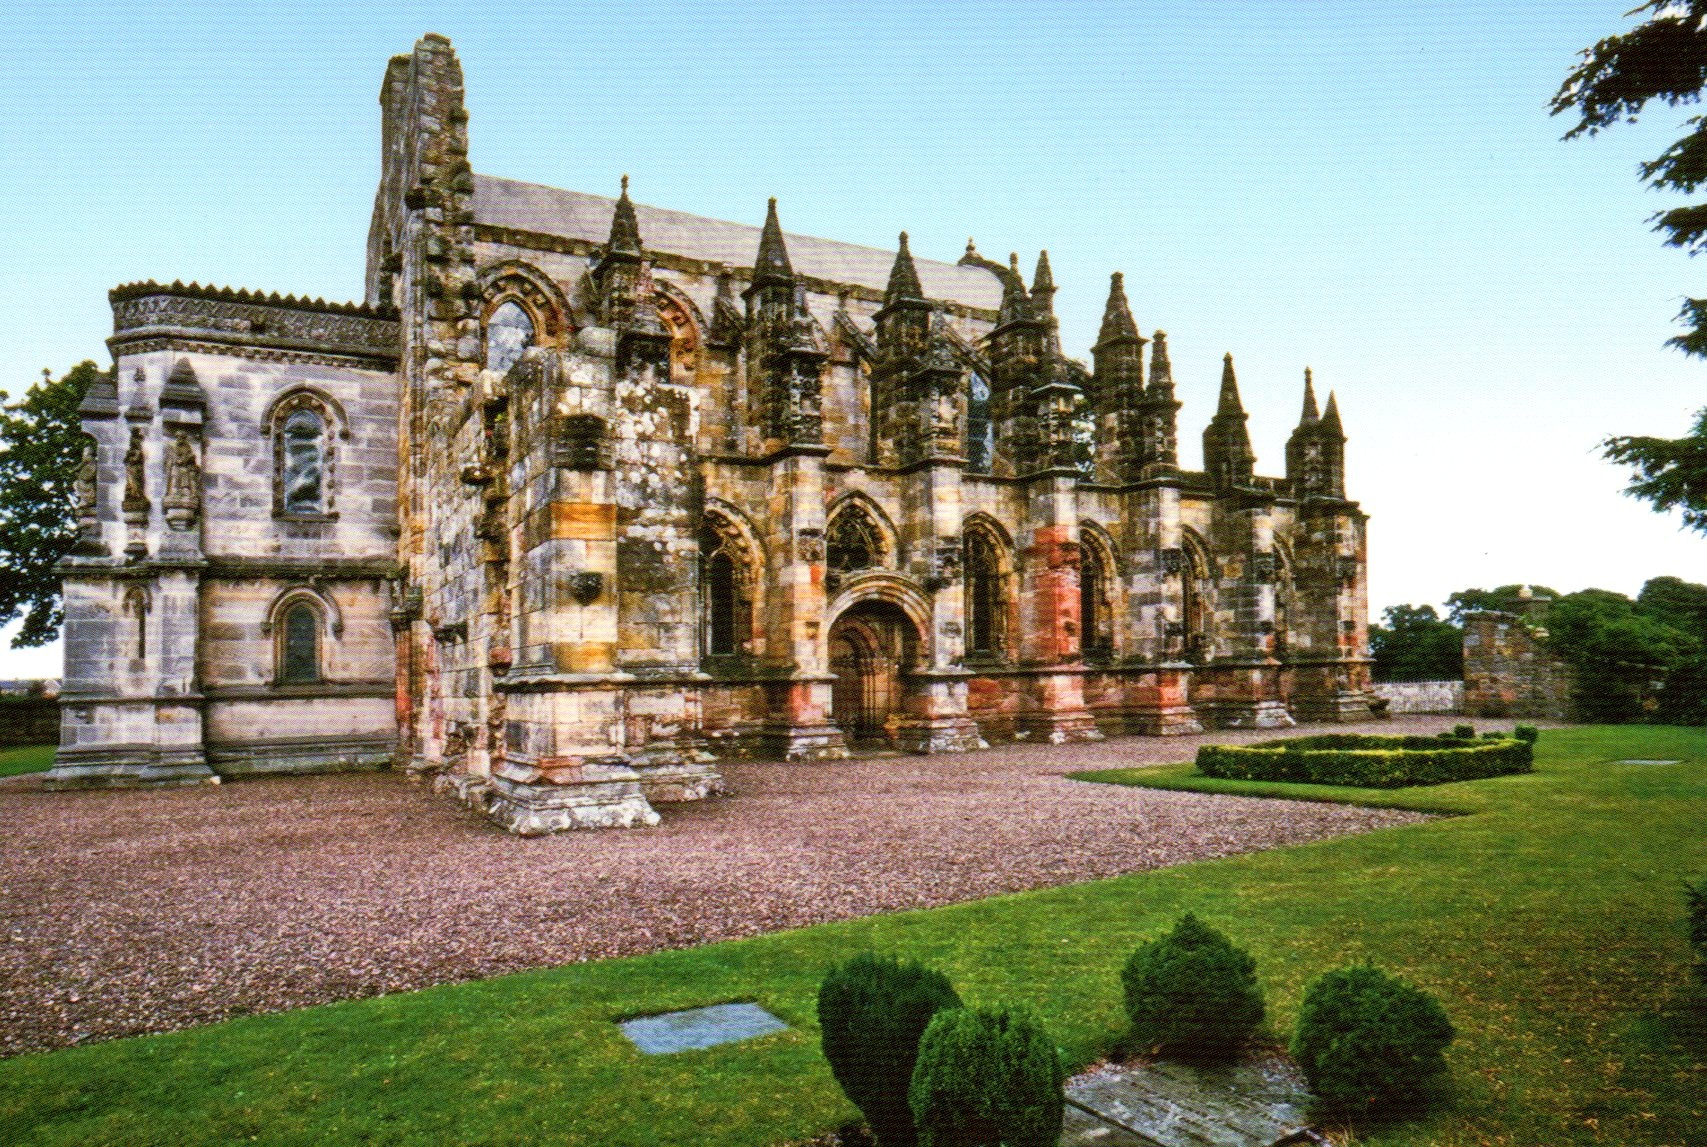 Rosslyn Chapel in Scotland Wallpaper and Background Image | 1707x1147 | ID:681656 - Wallpaper Abyss